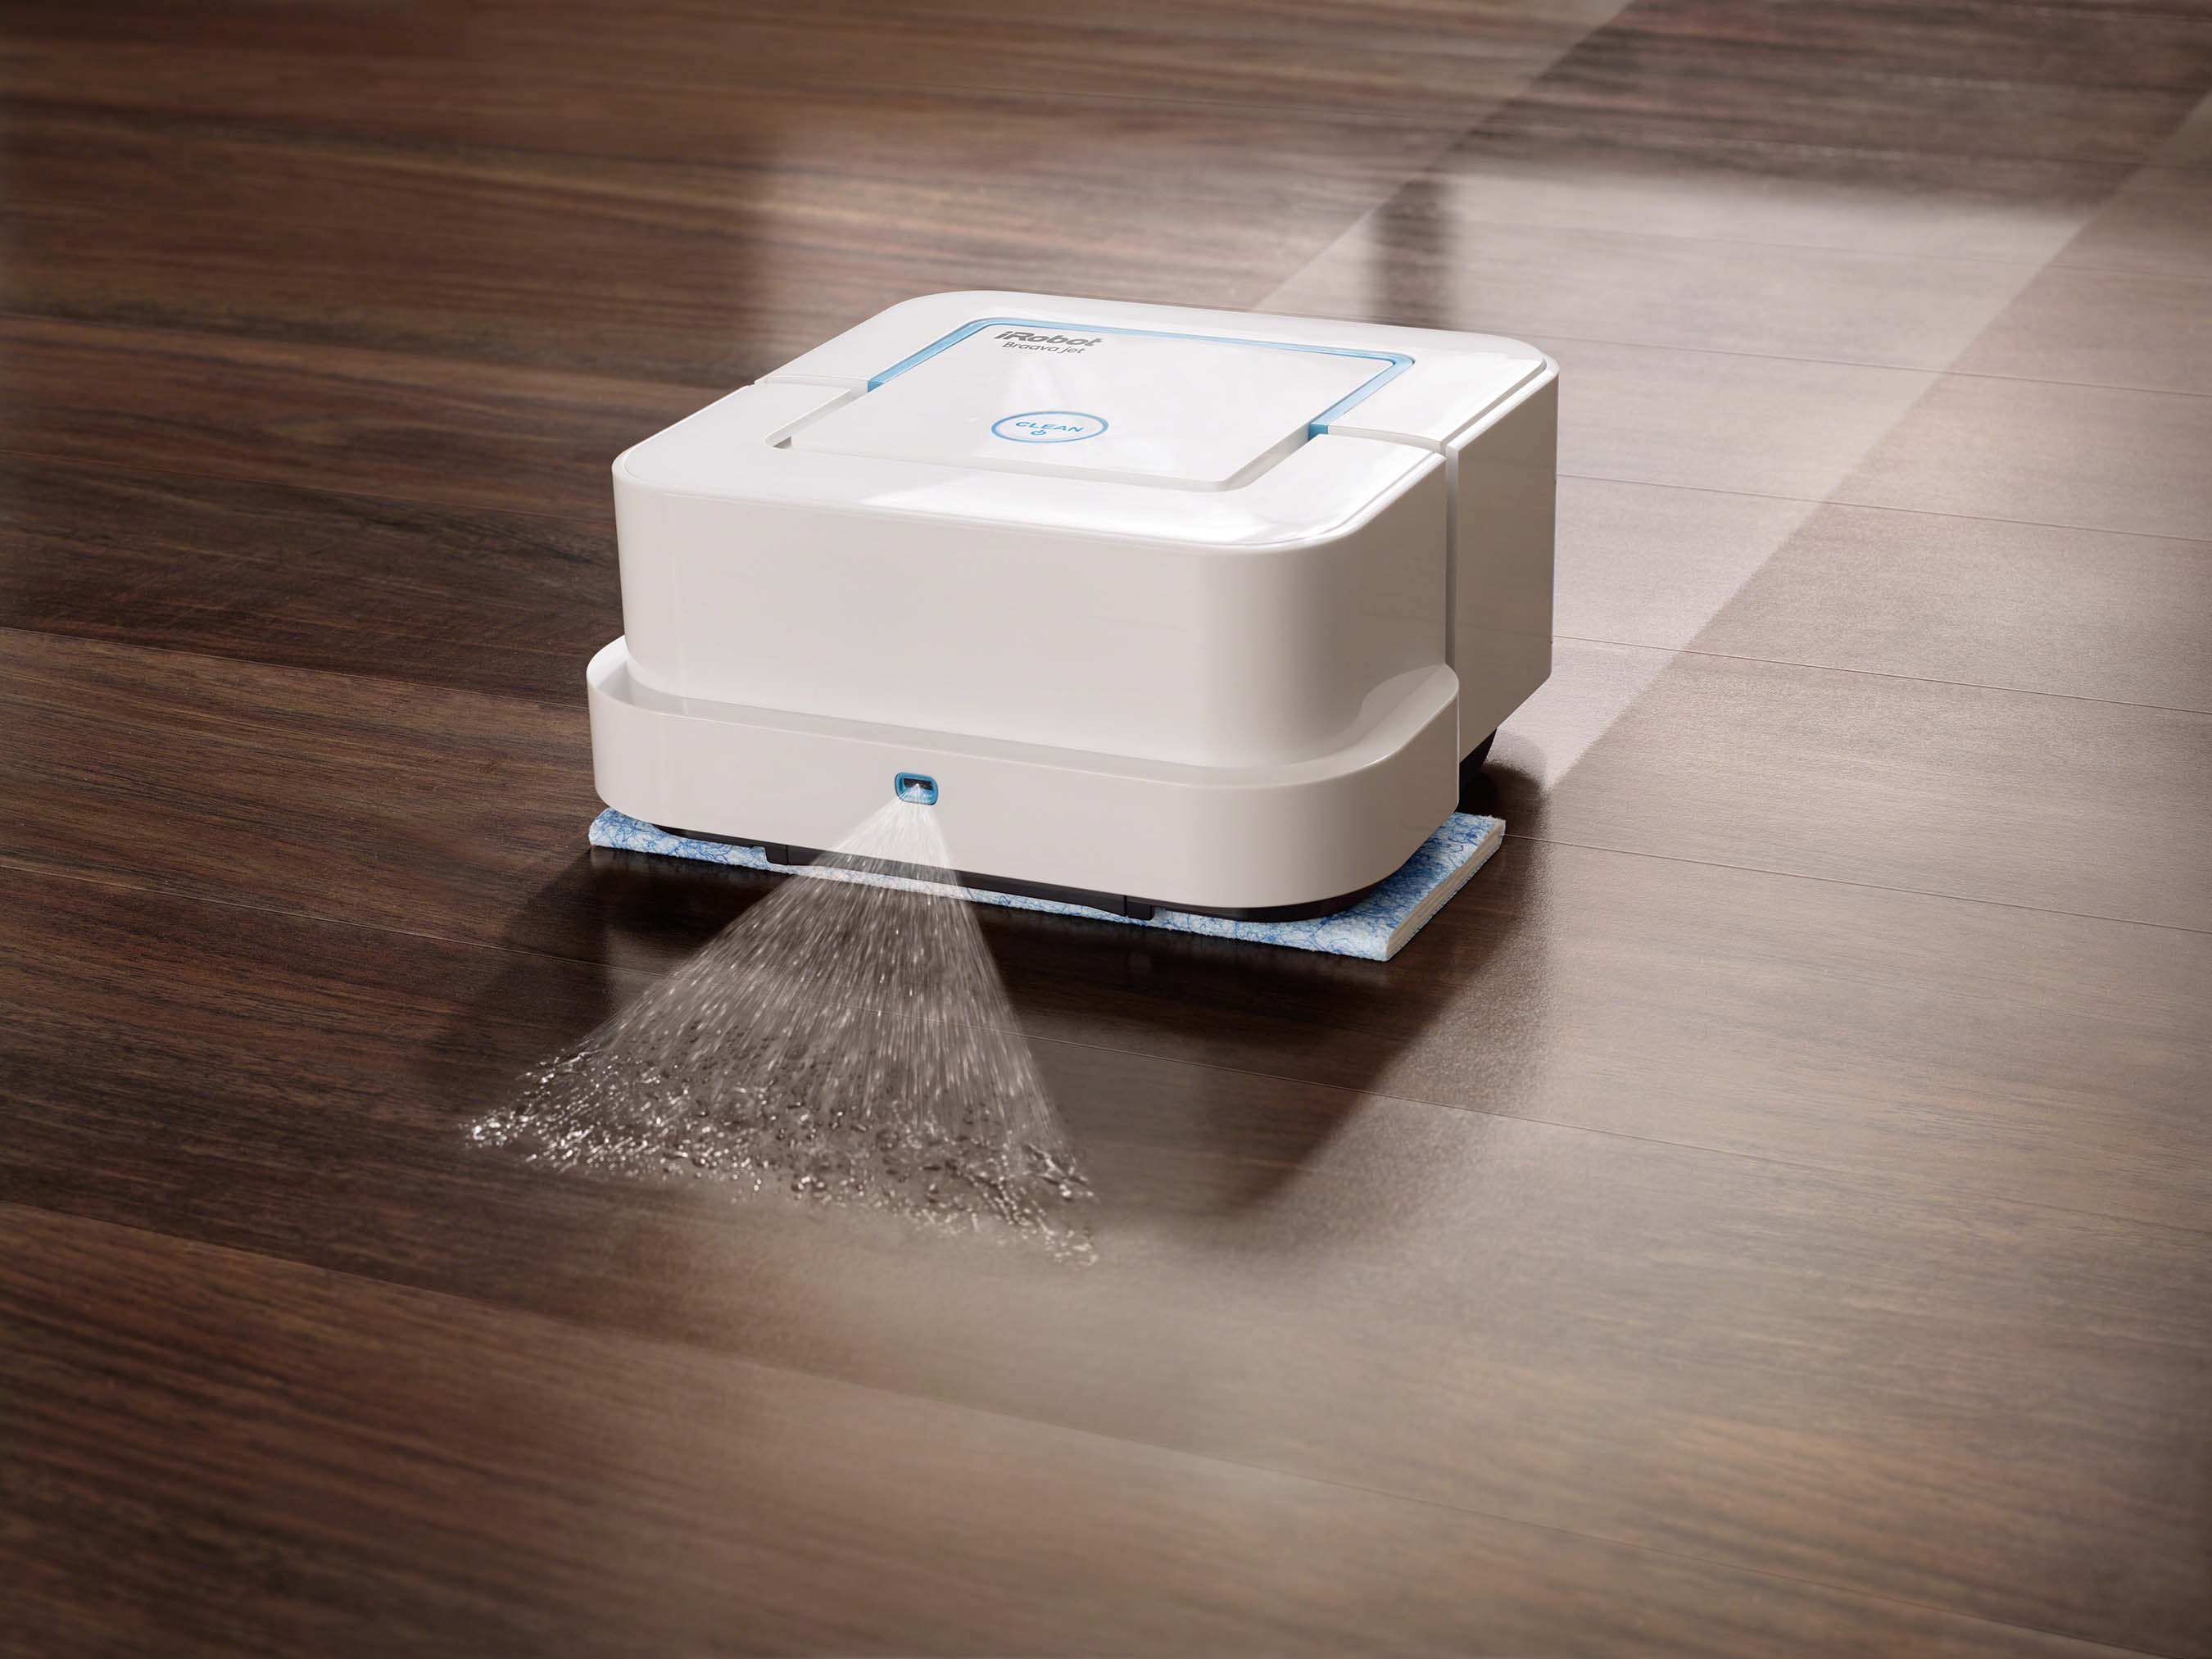 floor vacuum sjkelectrical description full htm smartpro end cleaning remote am sale product the philips cleaner smart control w robot compact i performance